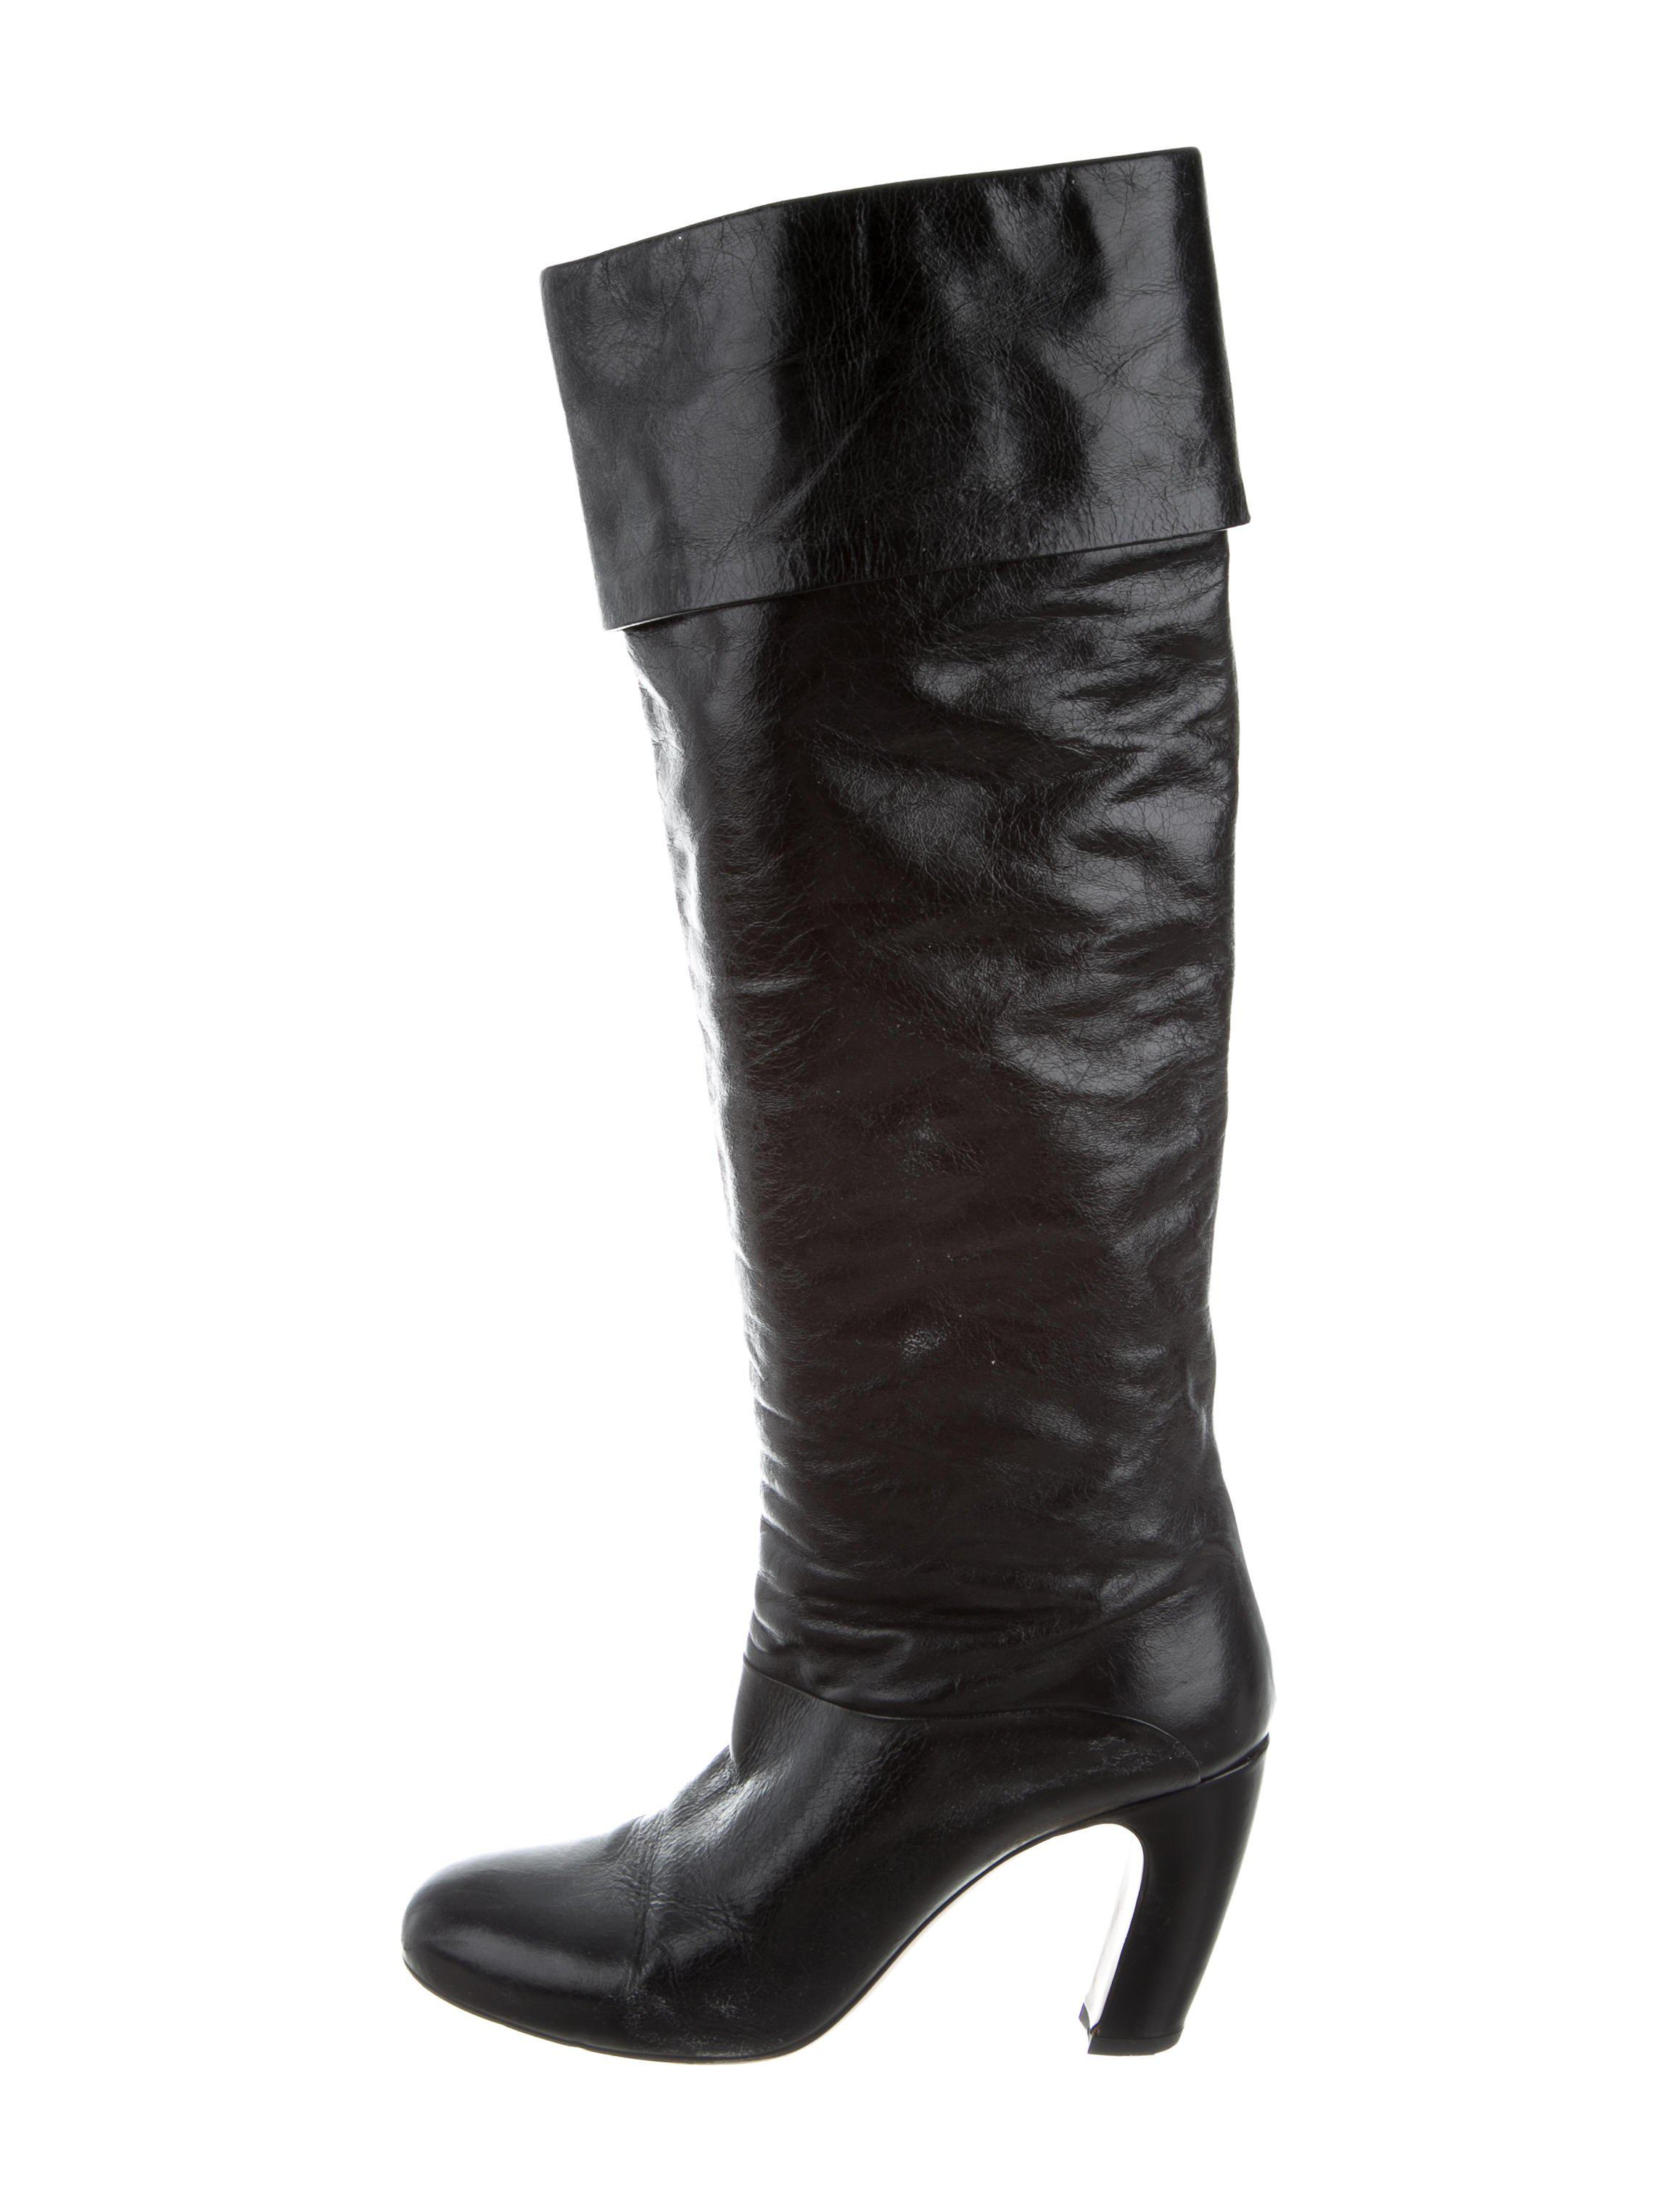 Miu Miu Knee-High Round-Toe Boots discount new arrival free shipping the cheapest discount big sale AwenR